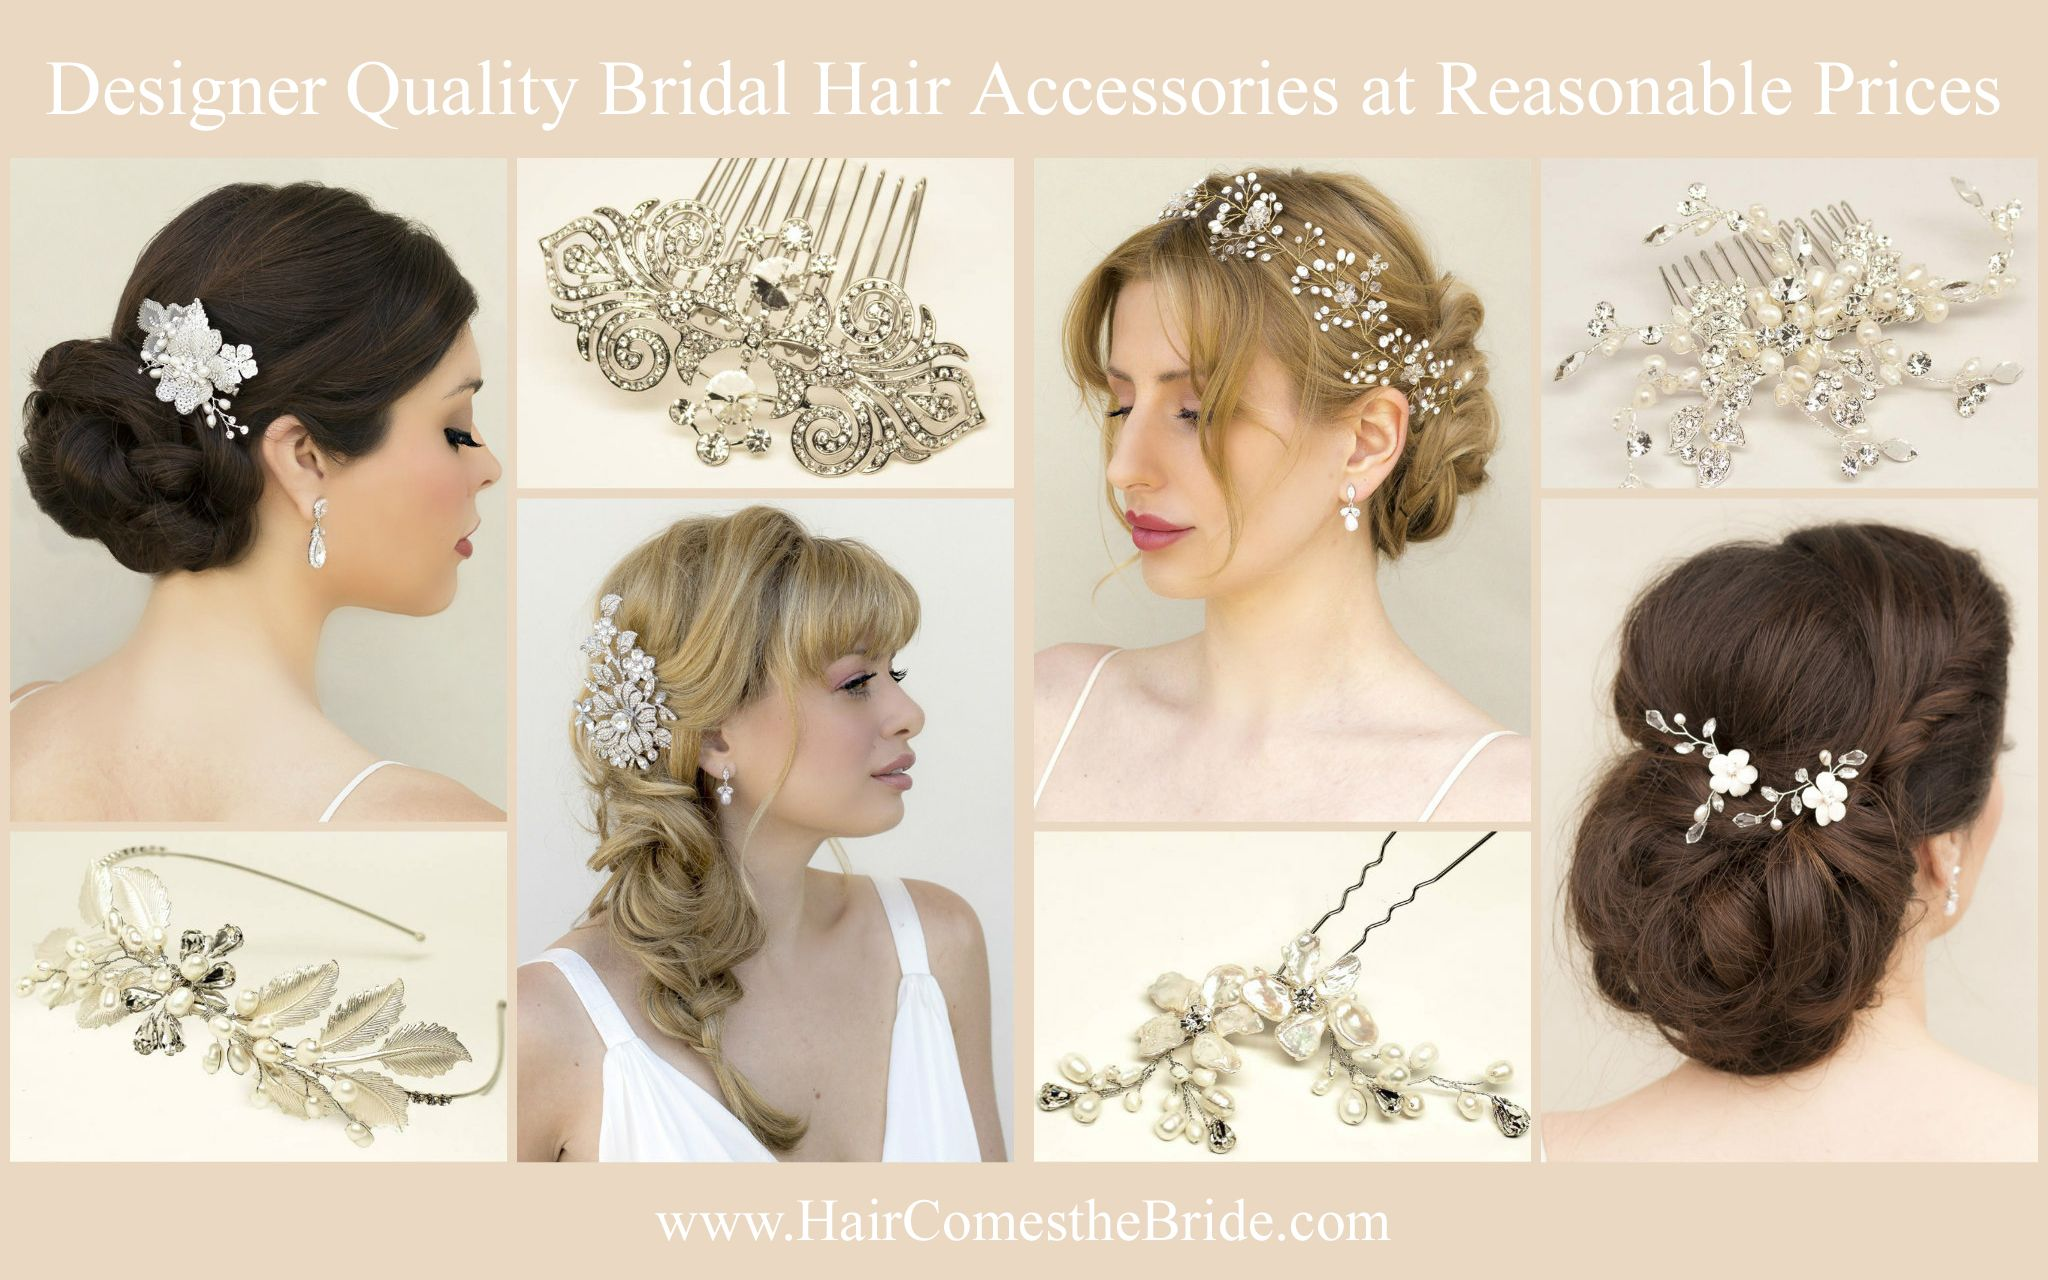 designer bridal hair accessories at reasonable prices ~ real